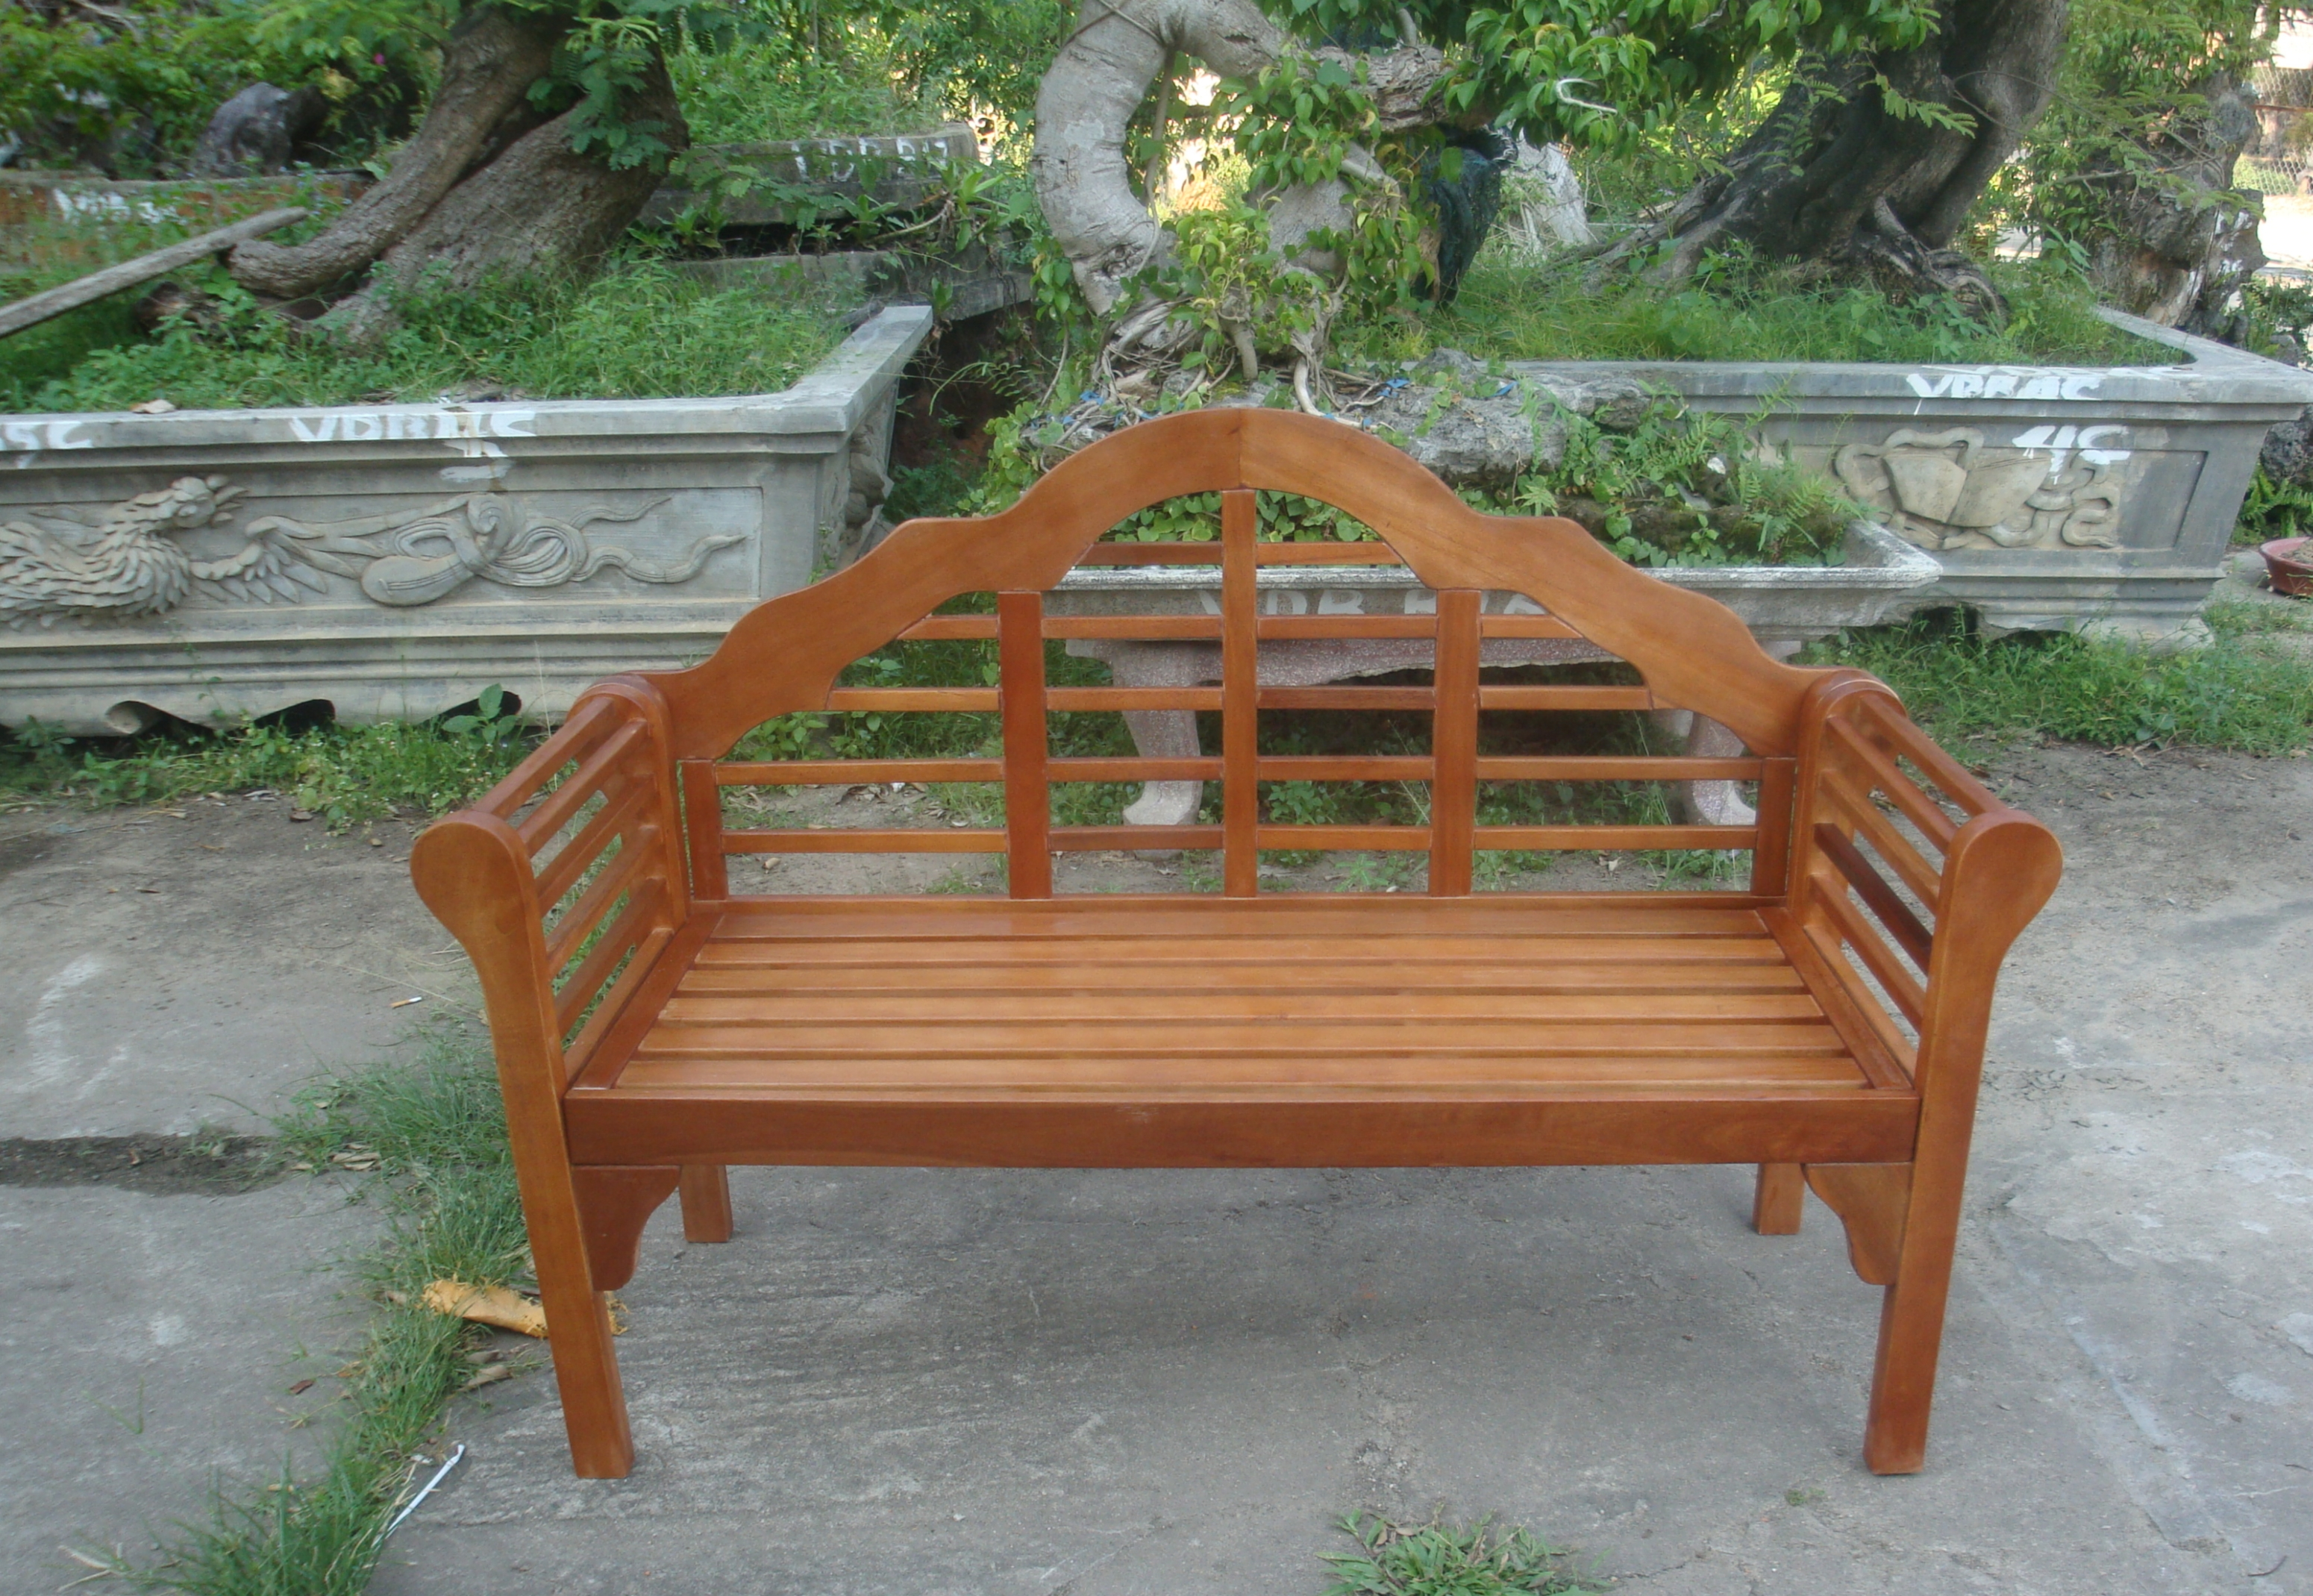 Garden Bench 2 Seater Wooden Acacia Patio Furniture Seating Area Curved Back Ebay